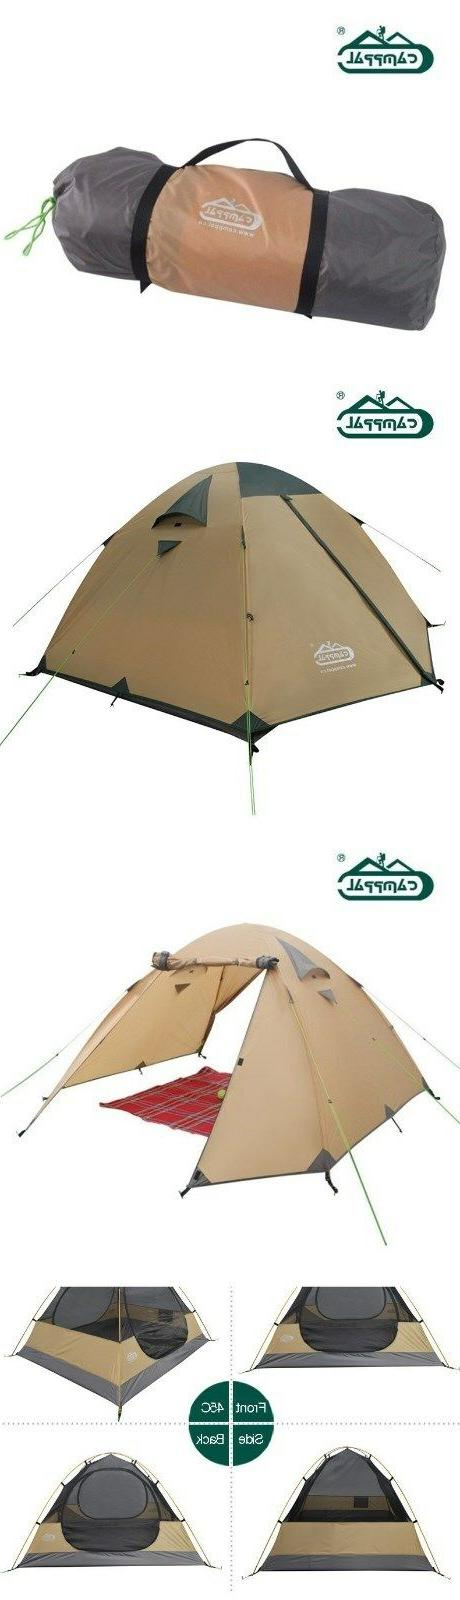 Camppal Professional High Four Seasons Mountaineering for 3